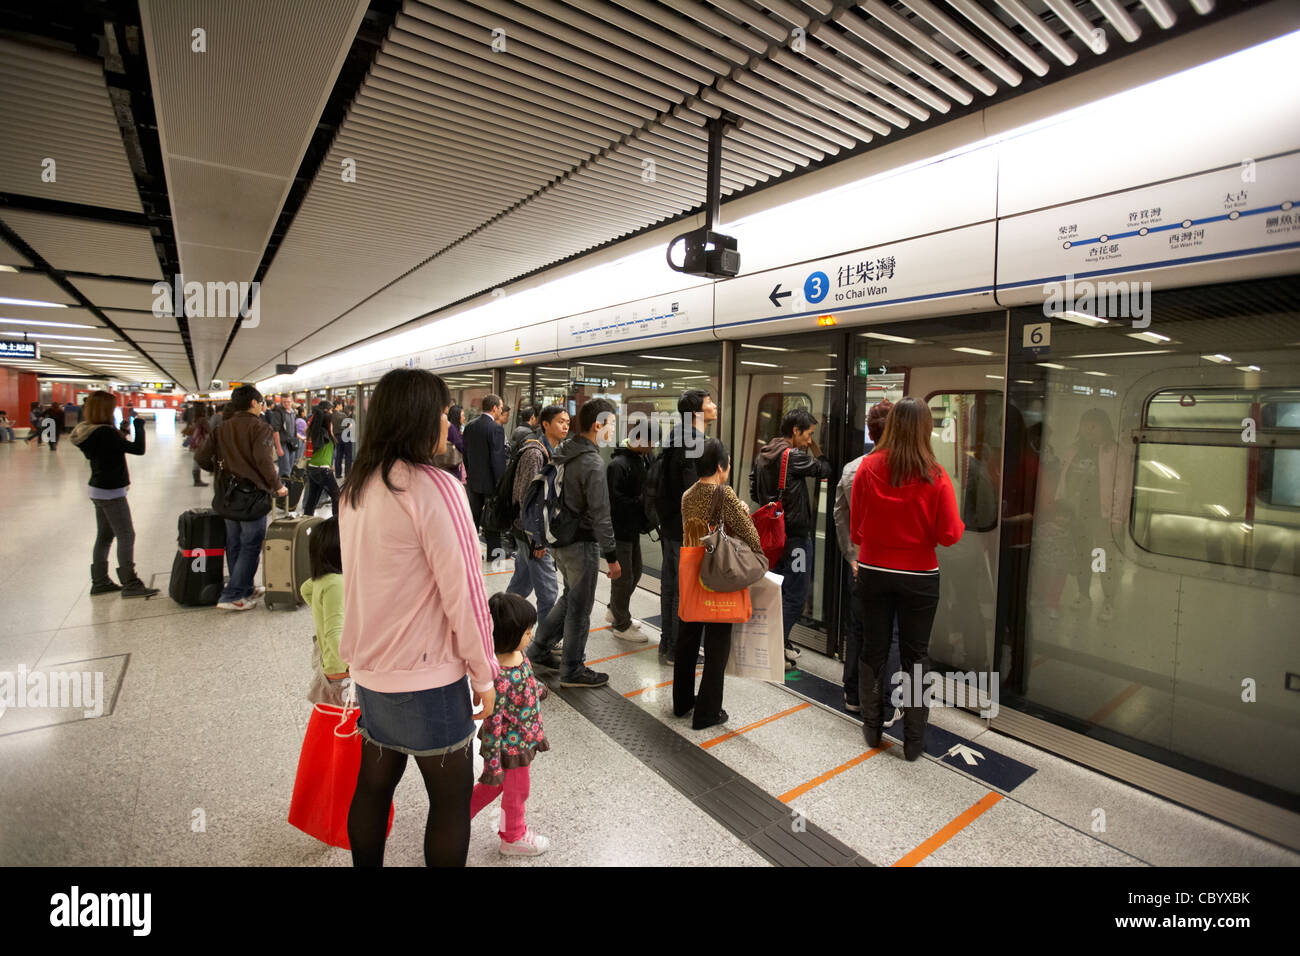 chinese people boarding underground train on hong kong central station mtr public transport system island line hksar - Stock Image